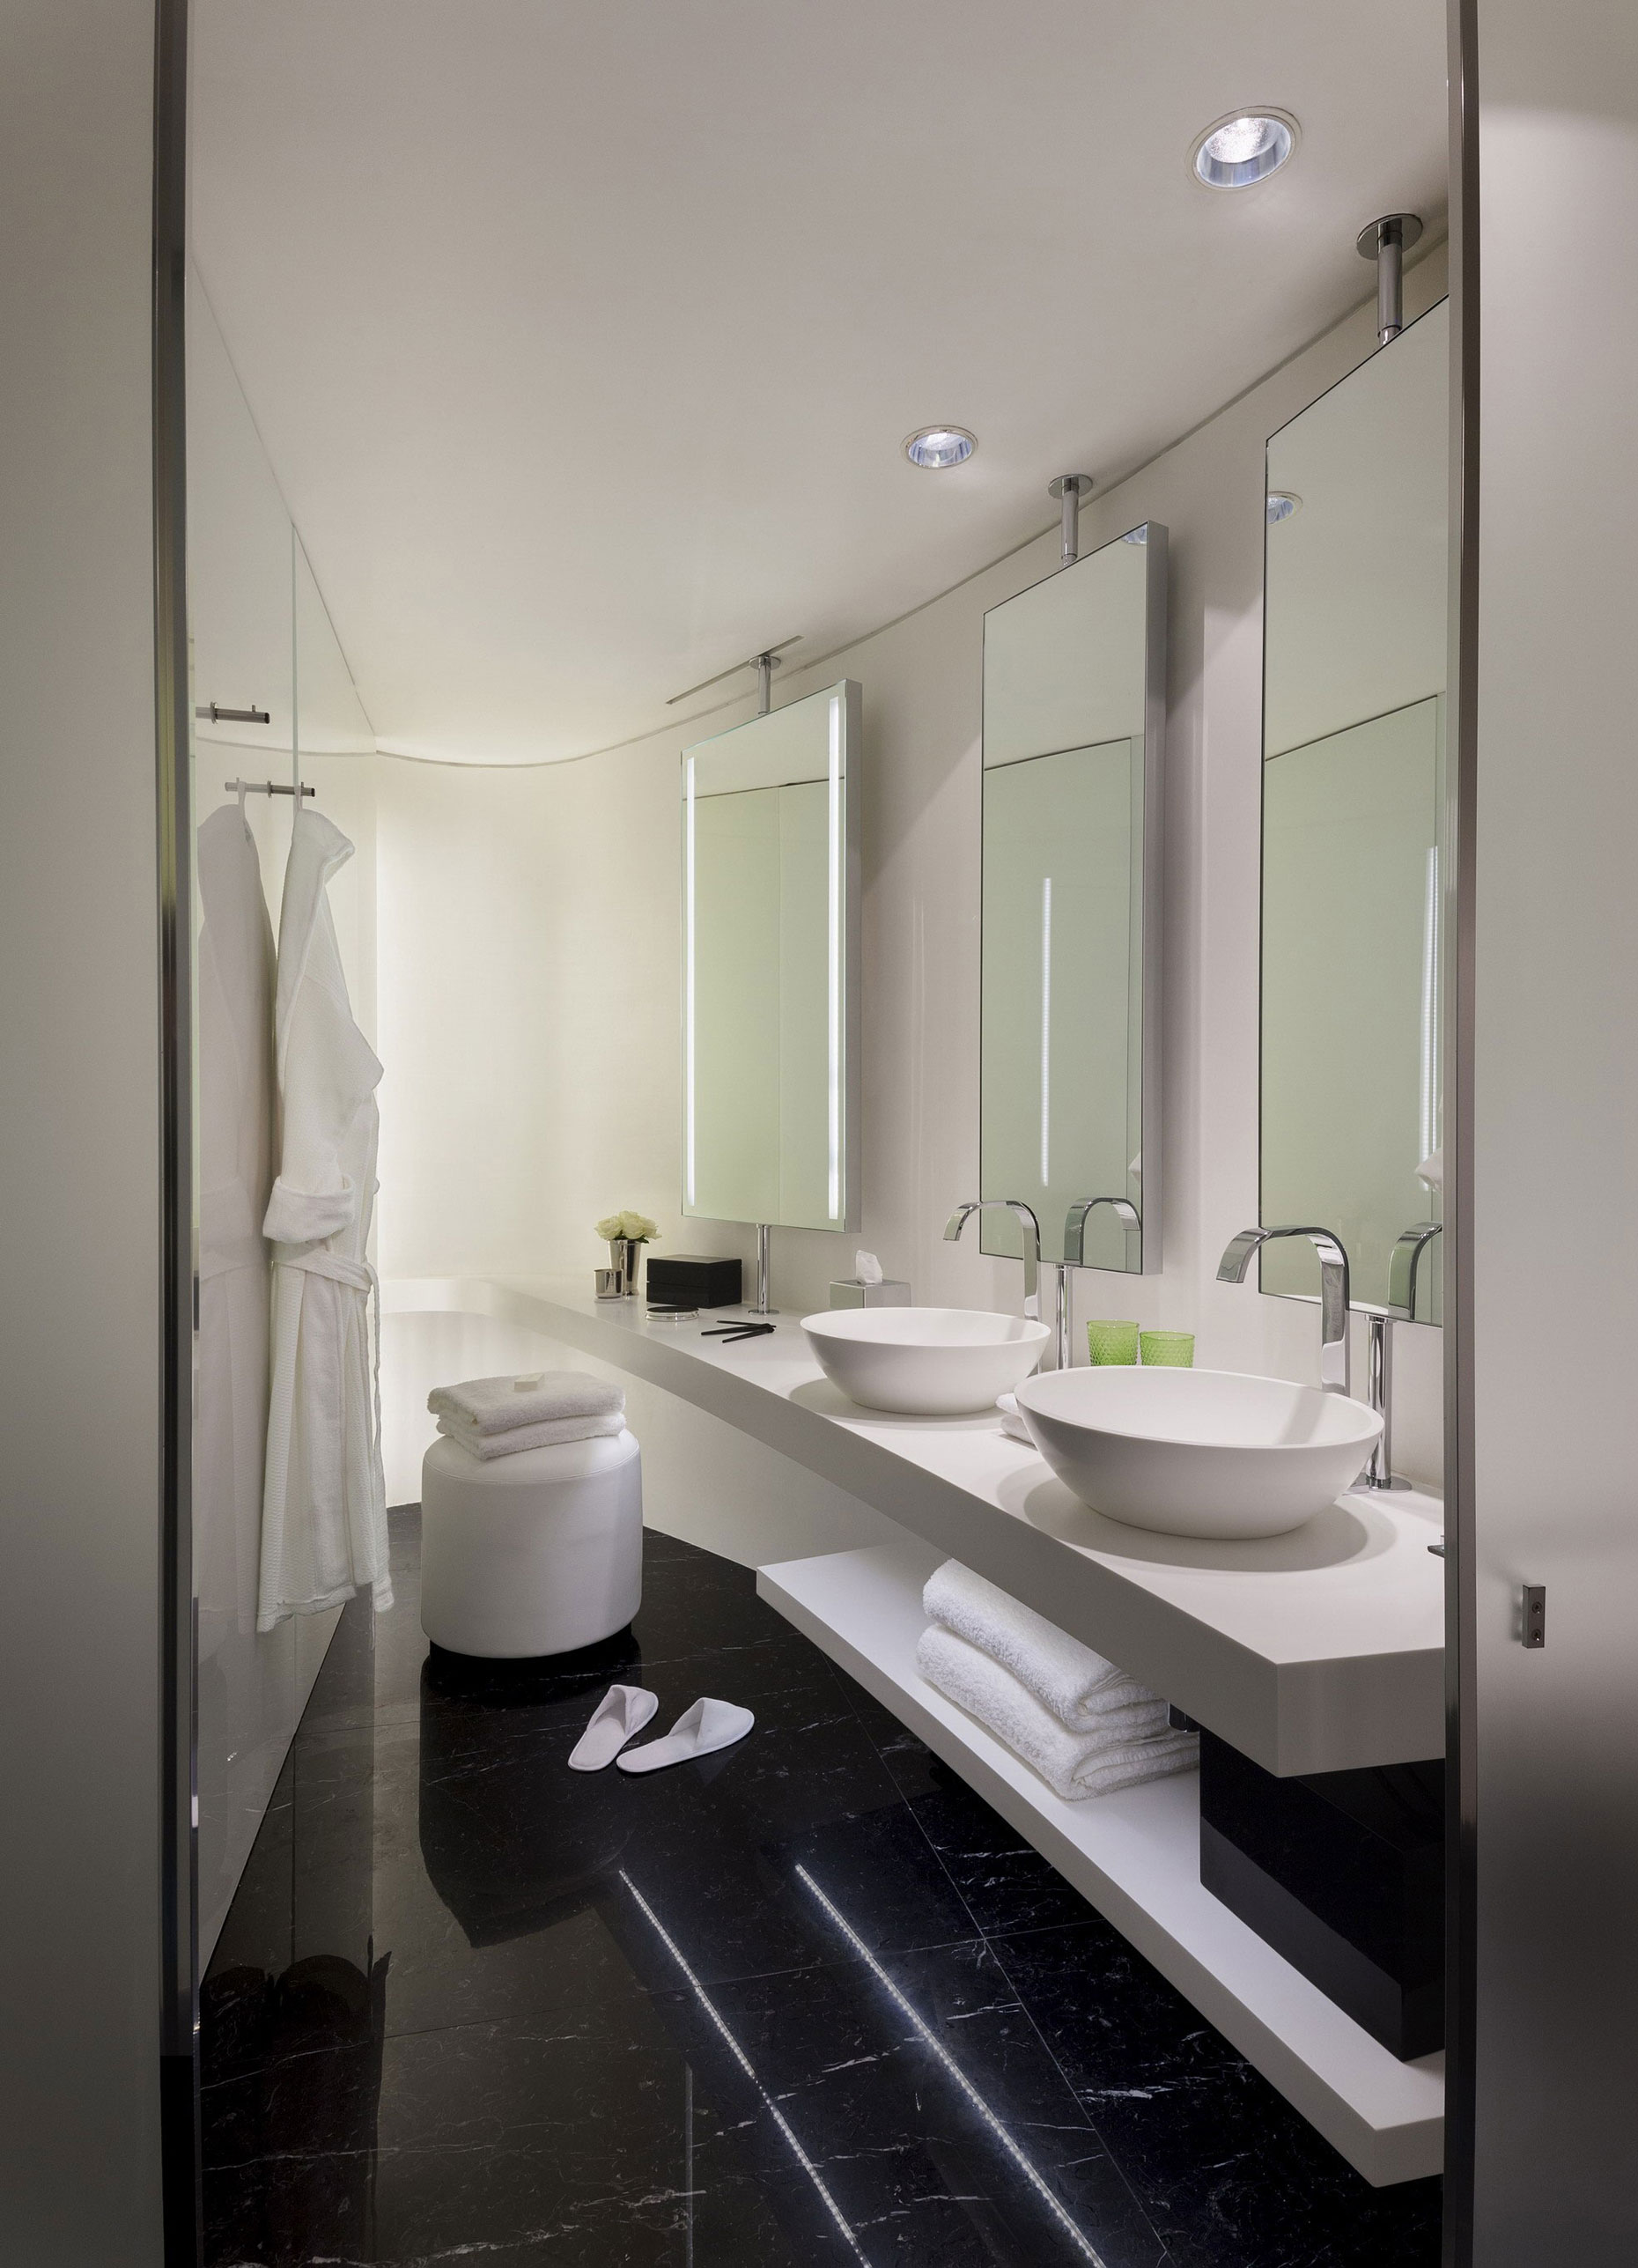 ME London Hotel by Foster + Partners (5)